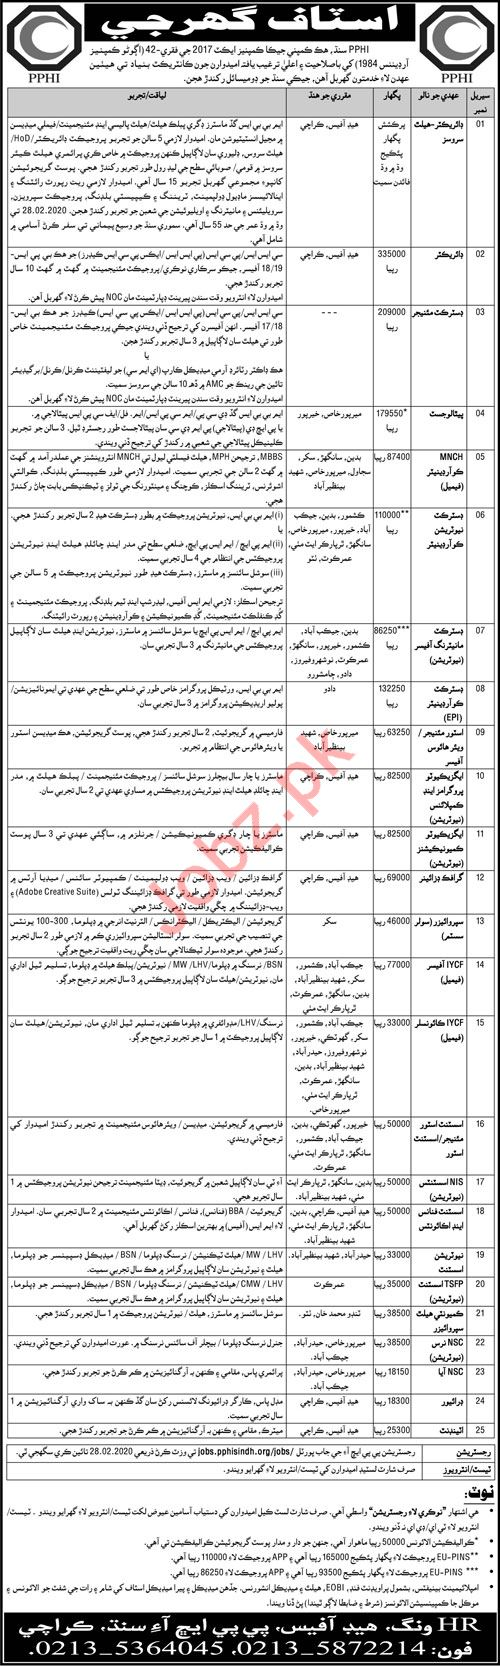 Peoples Primary Healthcare Initiative PPHI Sindh Jobs 2020